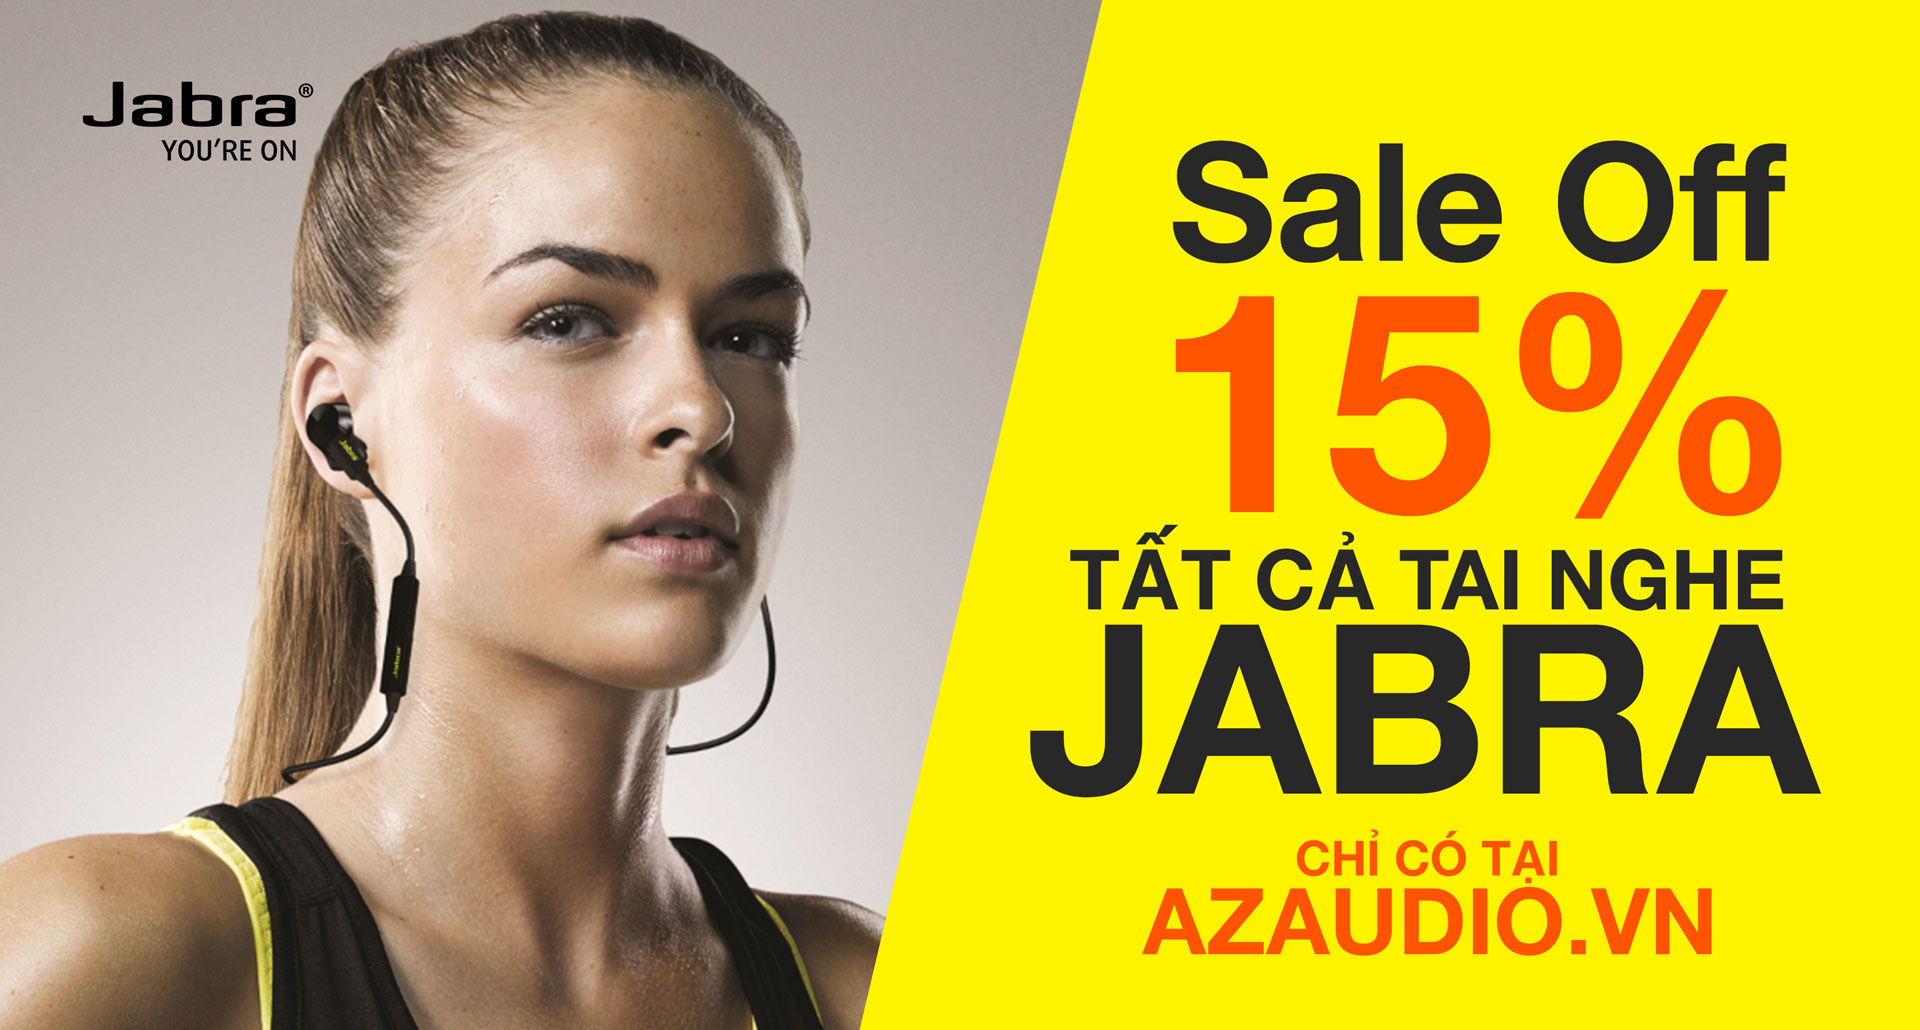 Sale off 15% Jabra